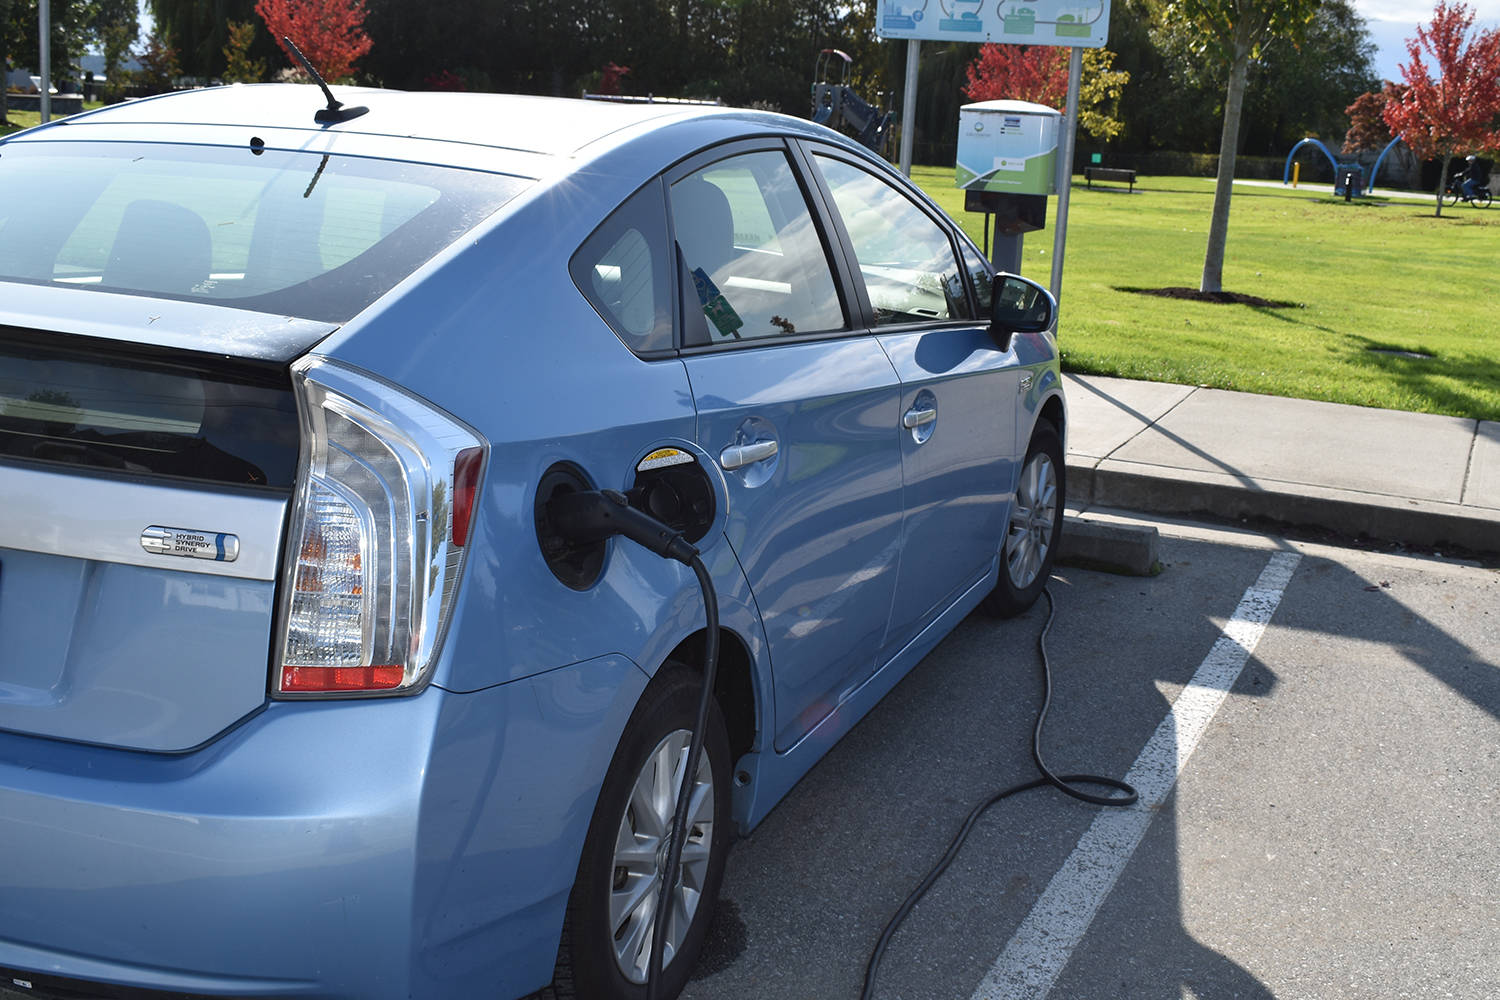 Sidney records the second-highest rate of electric vehicle ownership on Vancouver Island